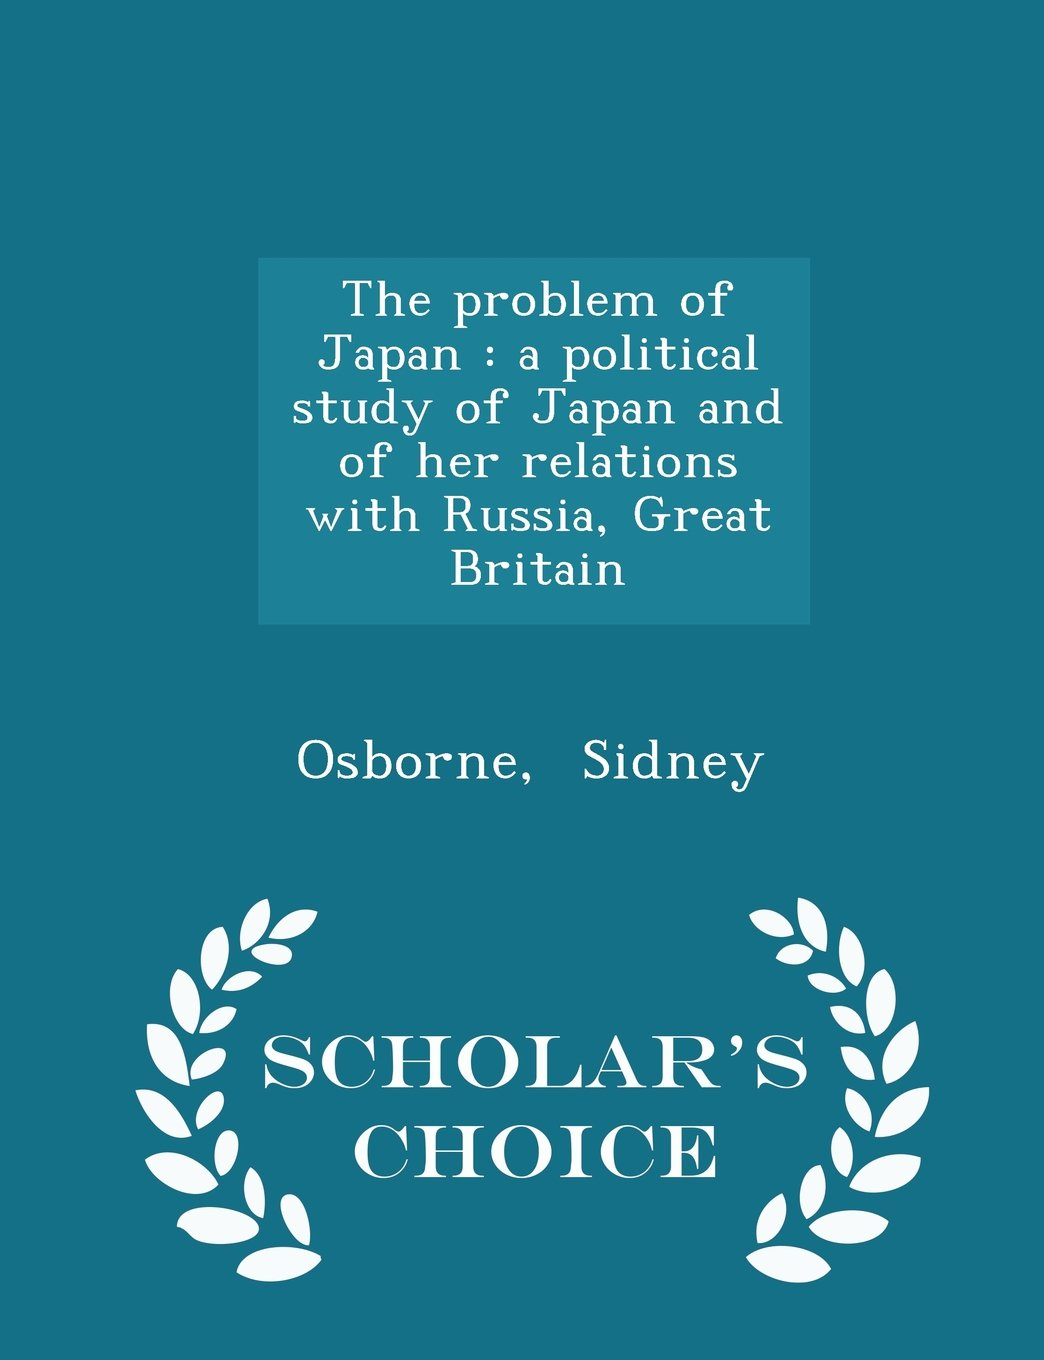 Download The problem of Japan: a political study of Japan and of her relations with Russia, Great Britain - Scholar's Choice Edition PDF